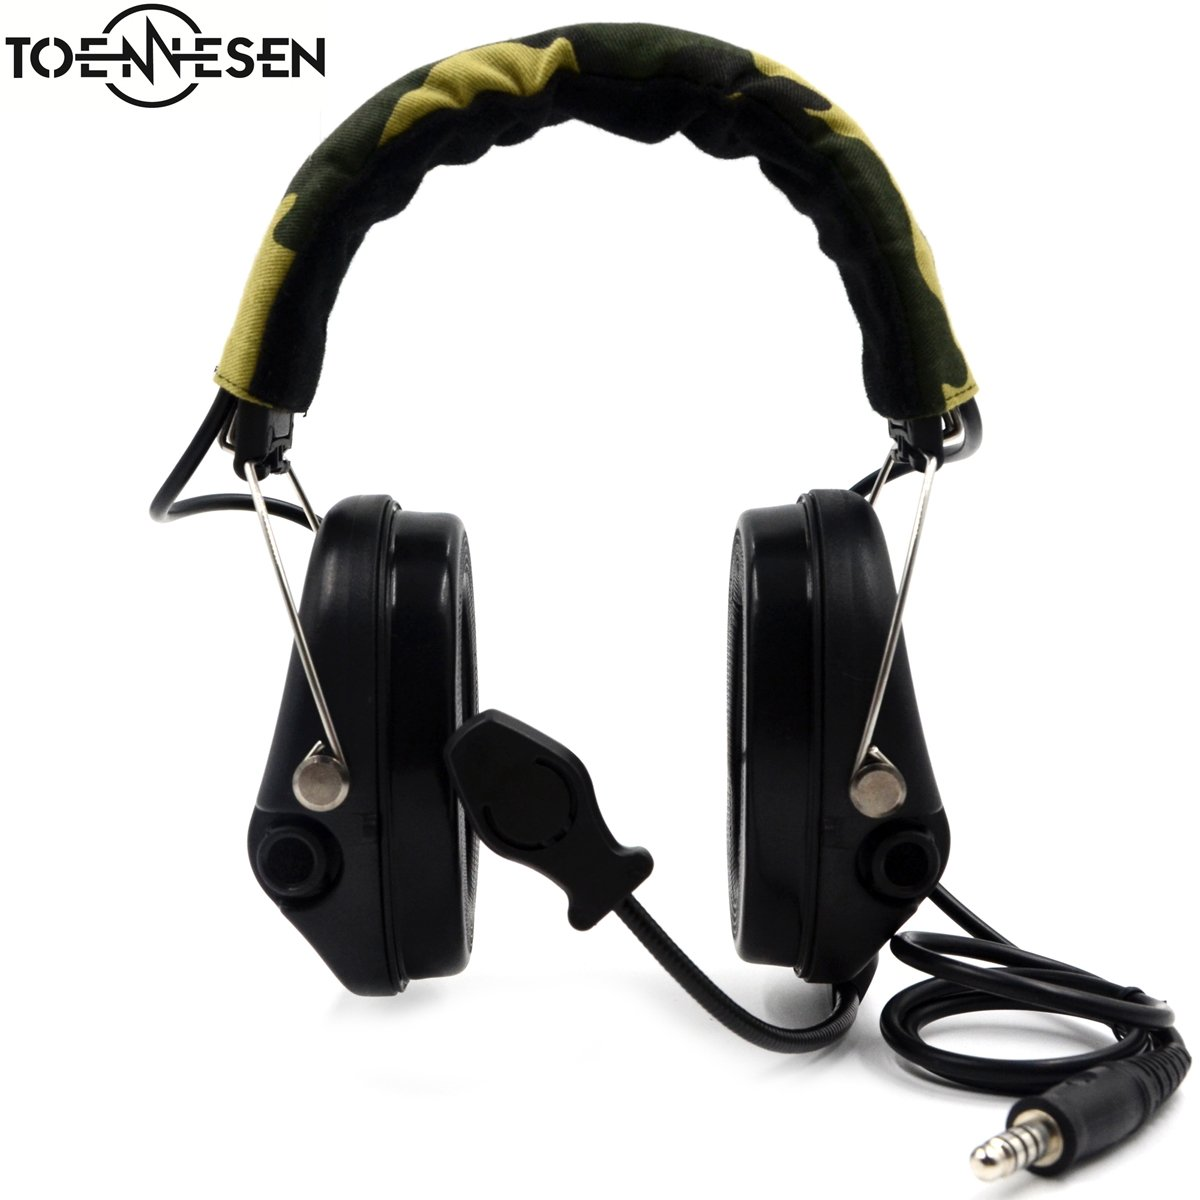 Electronic Earmuff with Noise Cancelling Construction for Hunting & Shooting by TOENNESEN